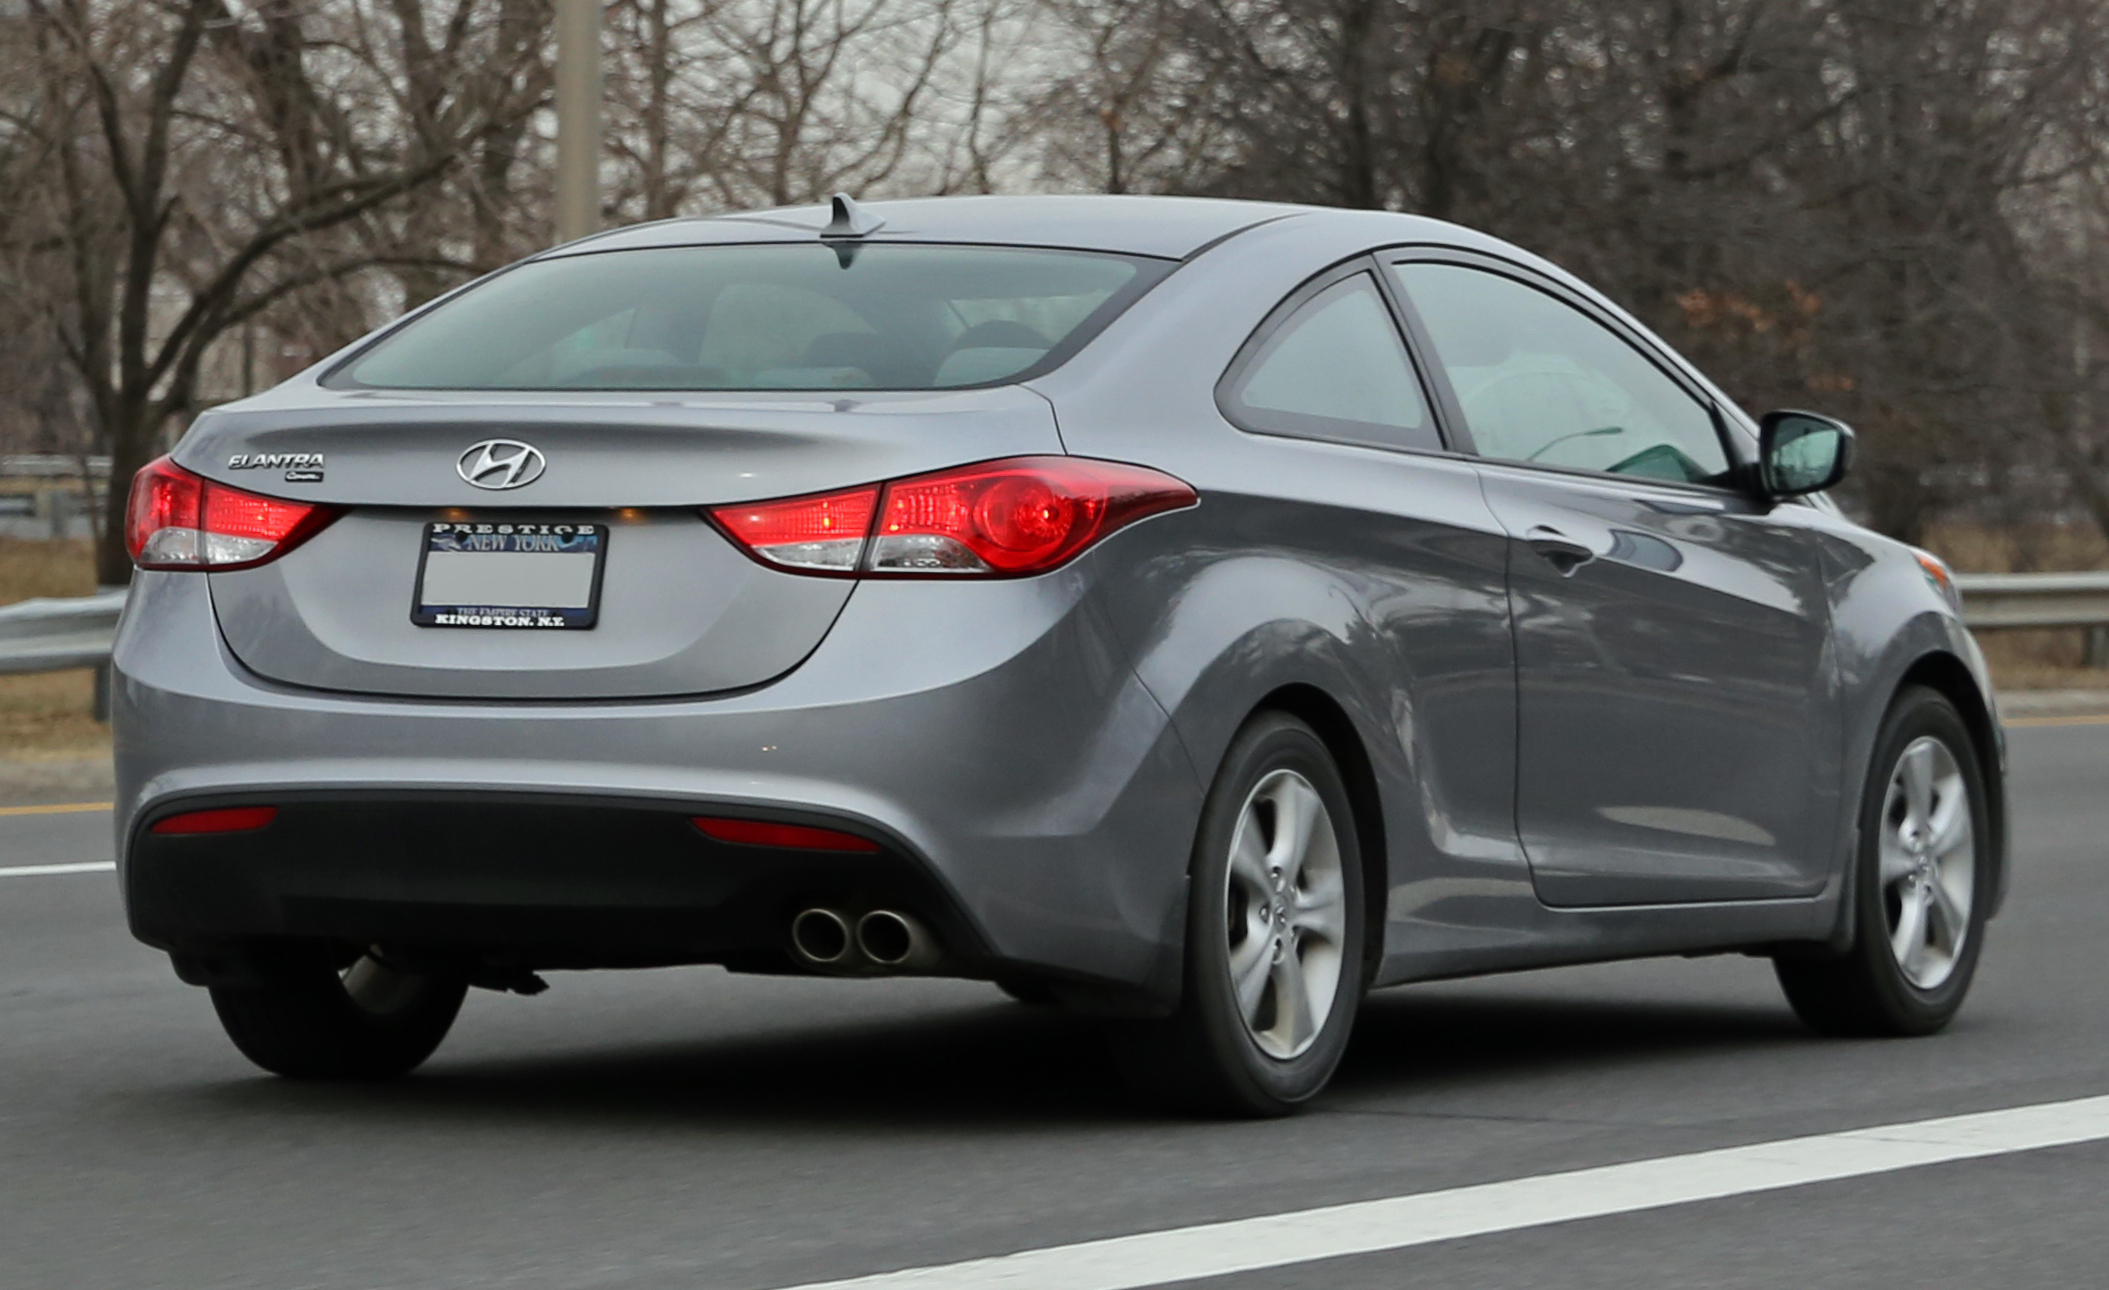 2014 hyundai elantra coupe gray 200 interior and exterior images. Black Bedroom Furniture Sets. Home Design Ideas